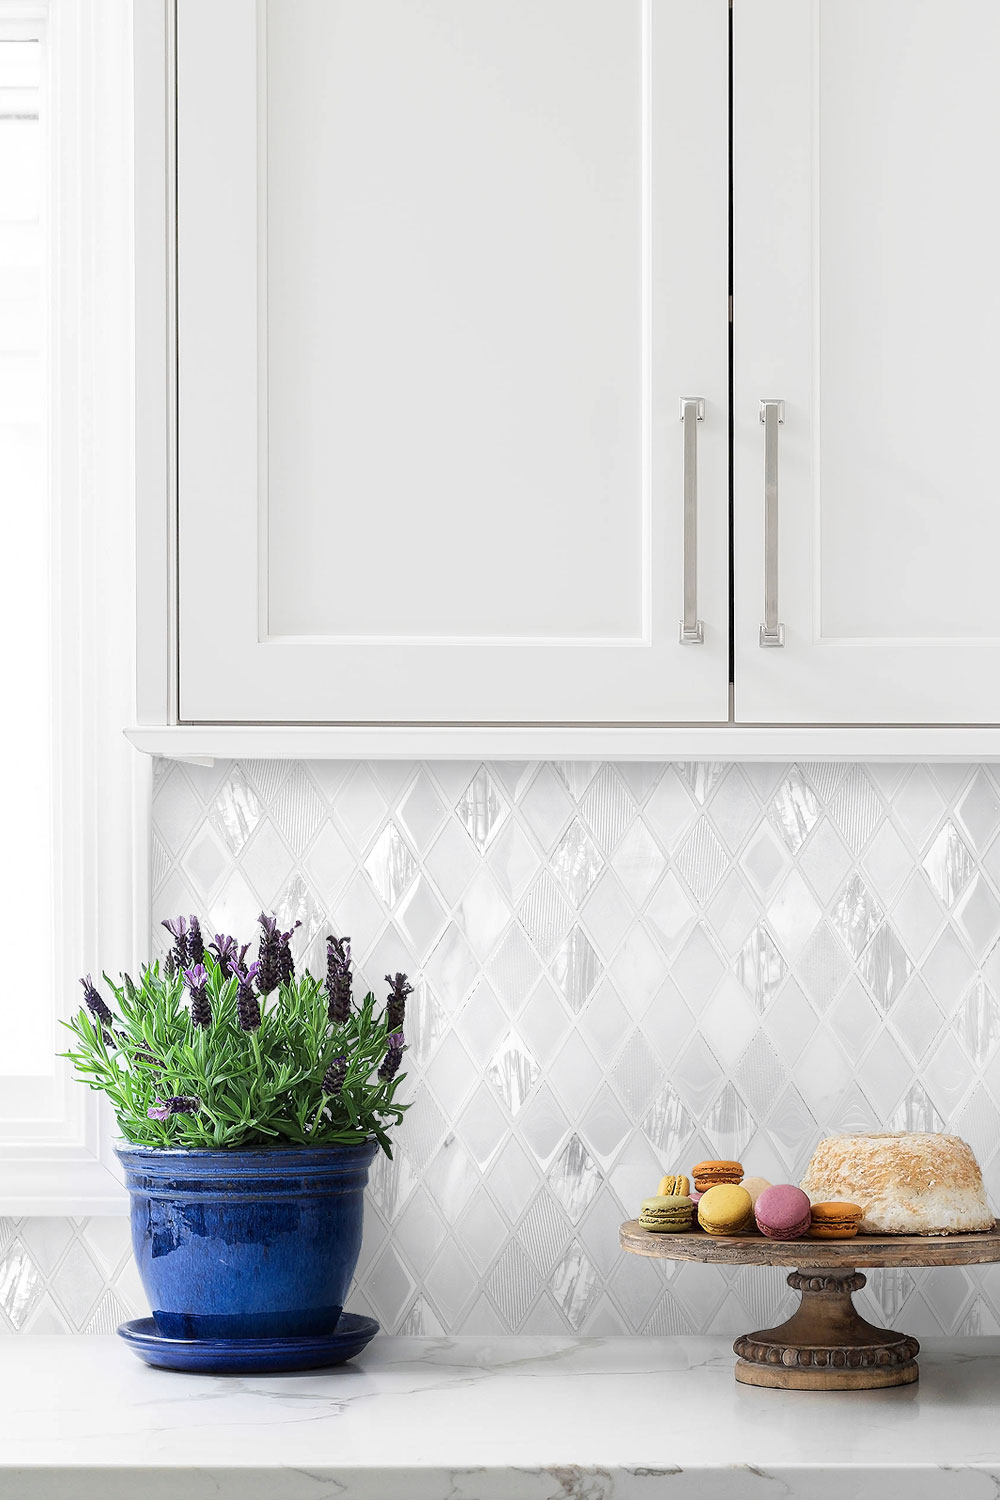 White Backsplash Tile Kitchen Cabinet Marble Countertop